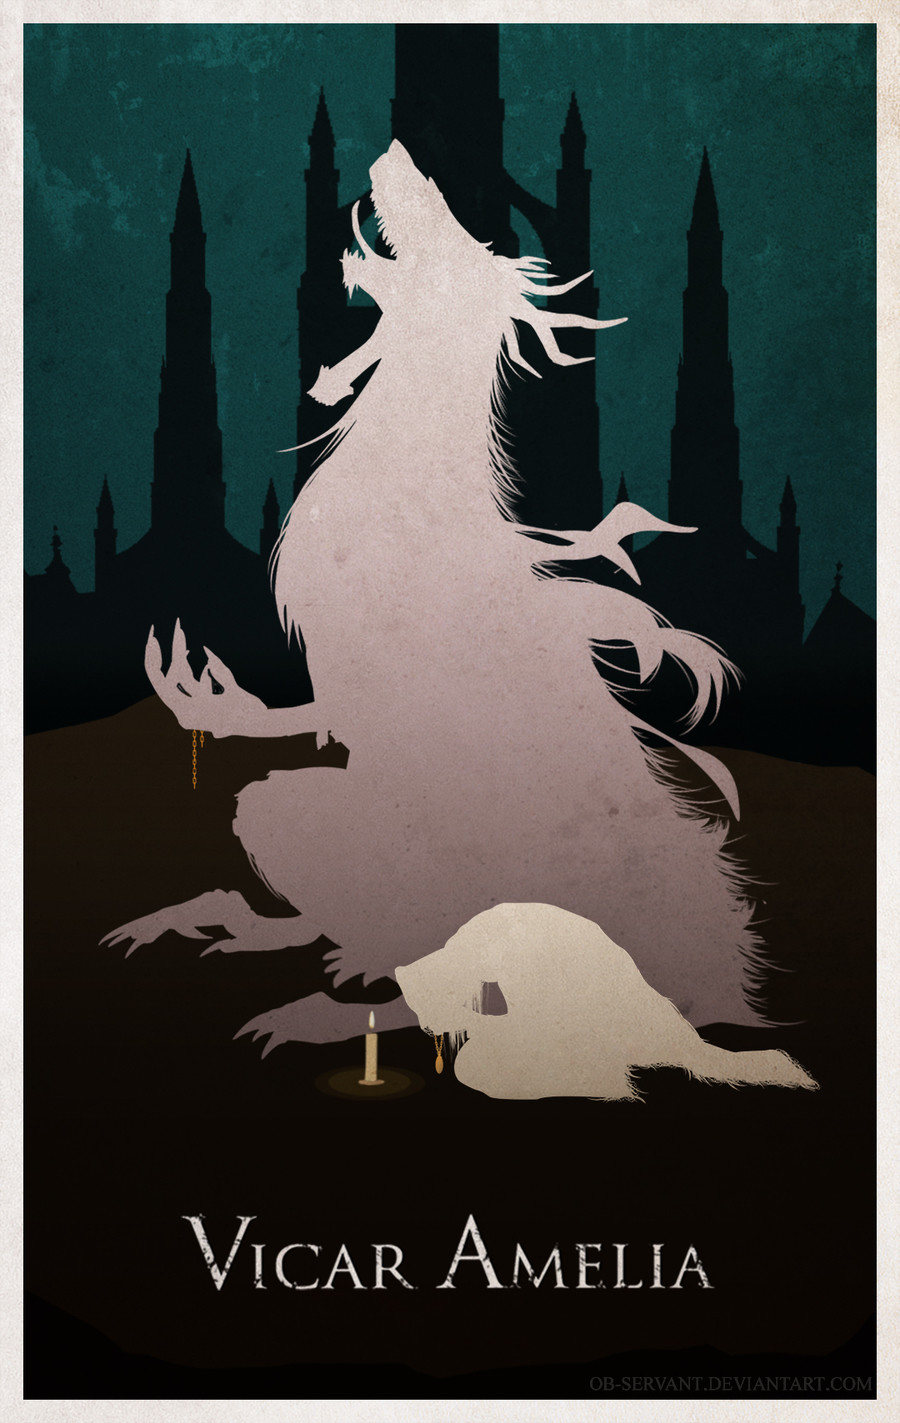 Bloodborne Comp: Vicar Amelia (UPDATED). Loudly she prayed, clutching the relic in her hands as the world outside was seized in an unending nightmare. She thoug